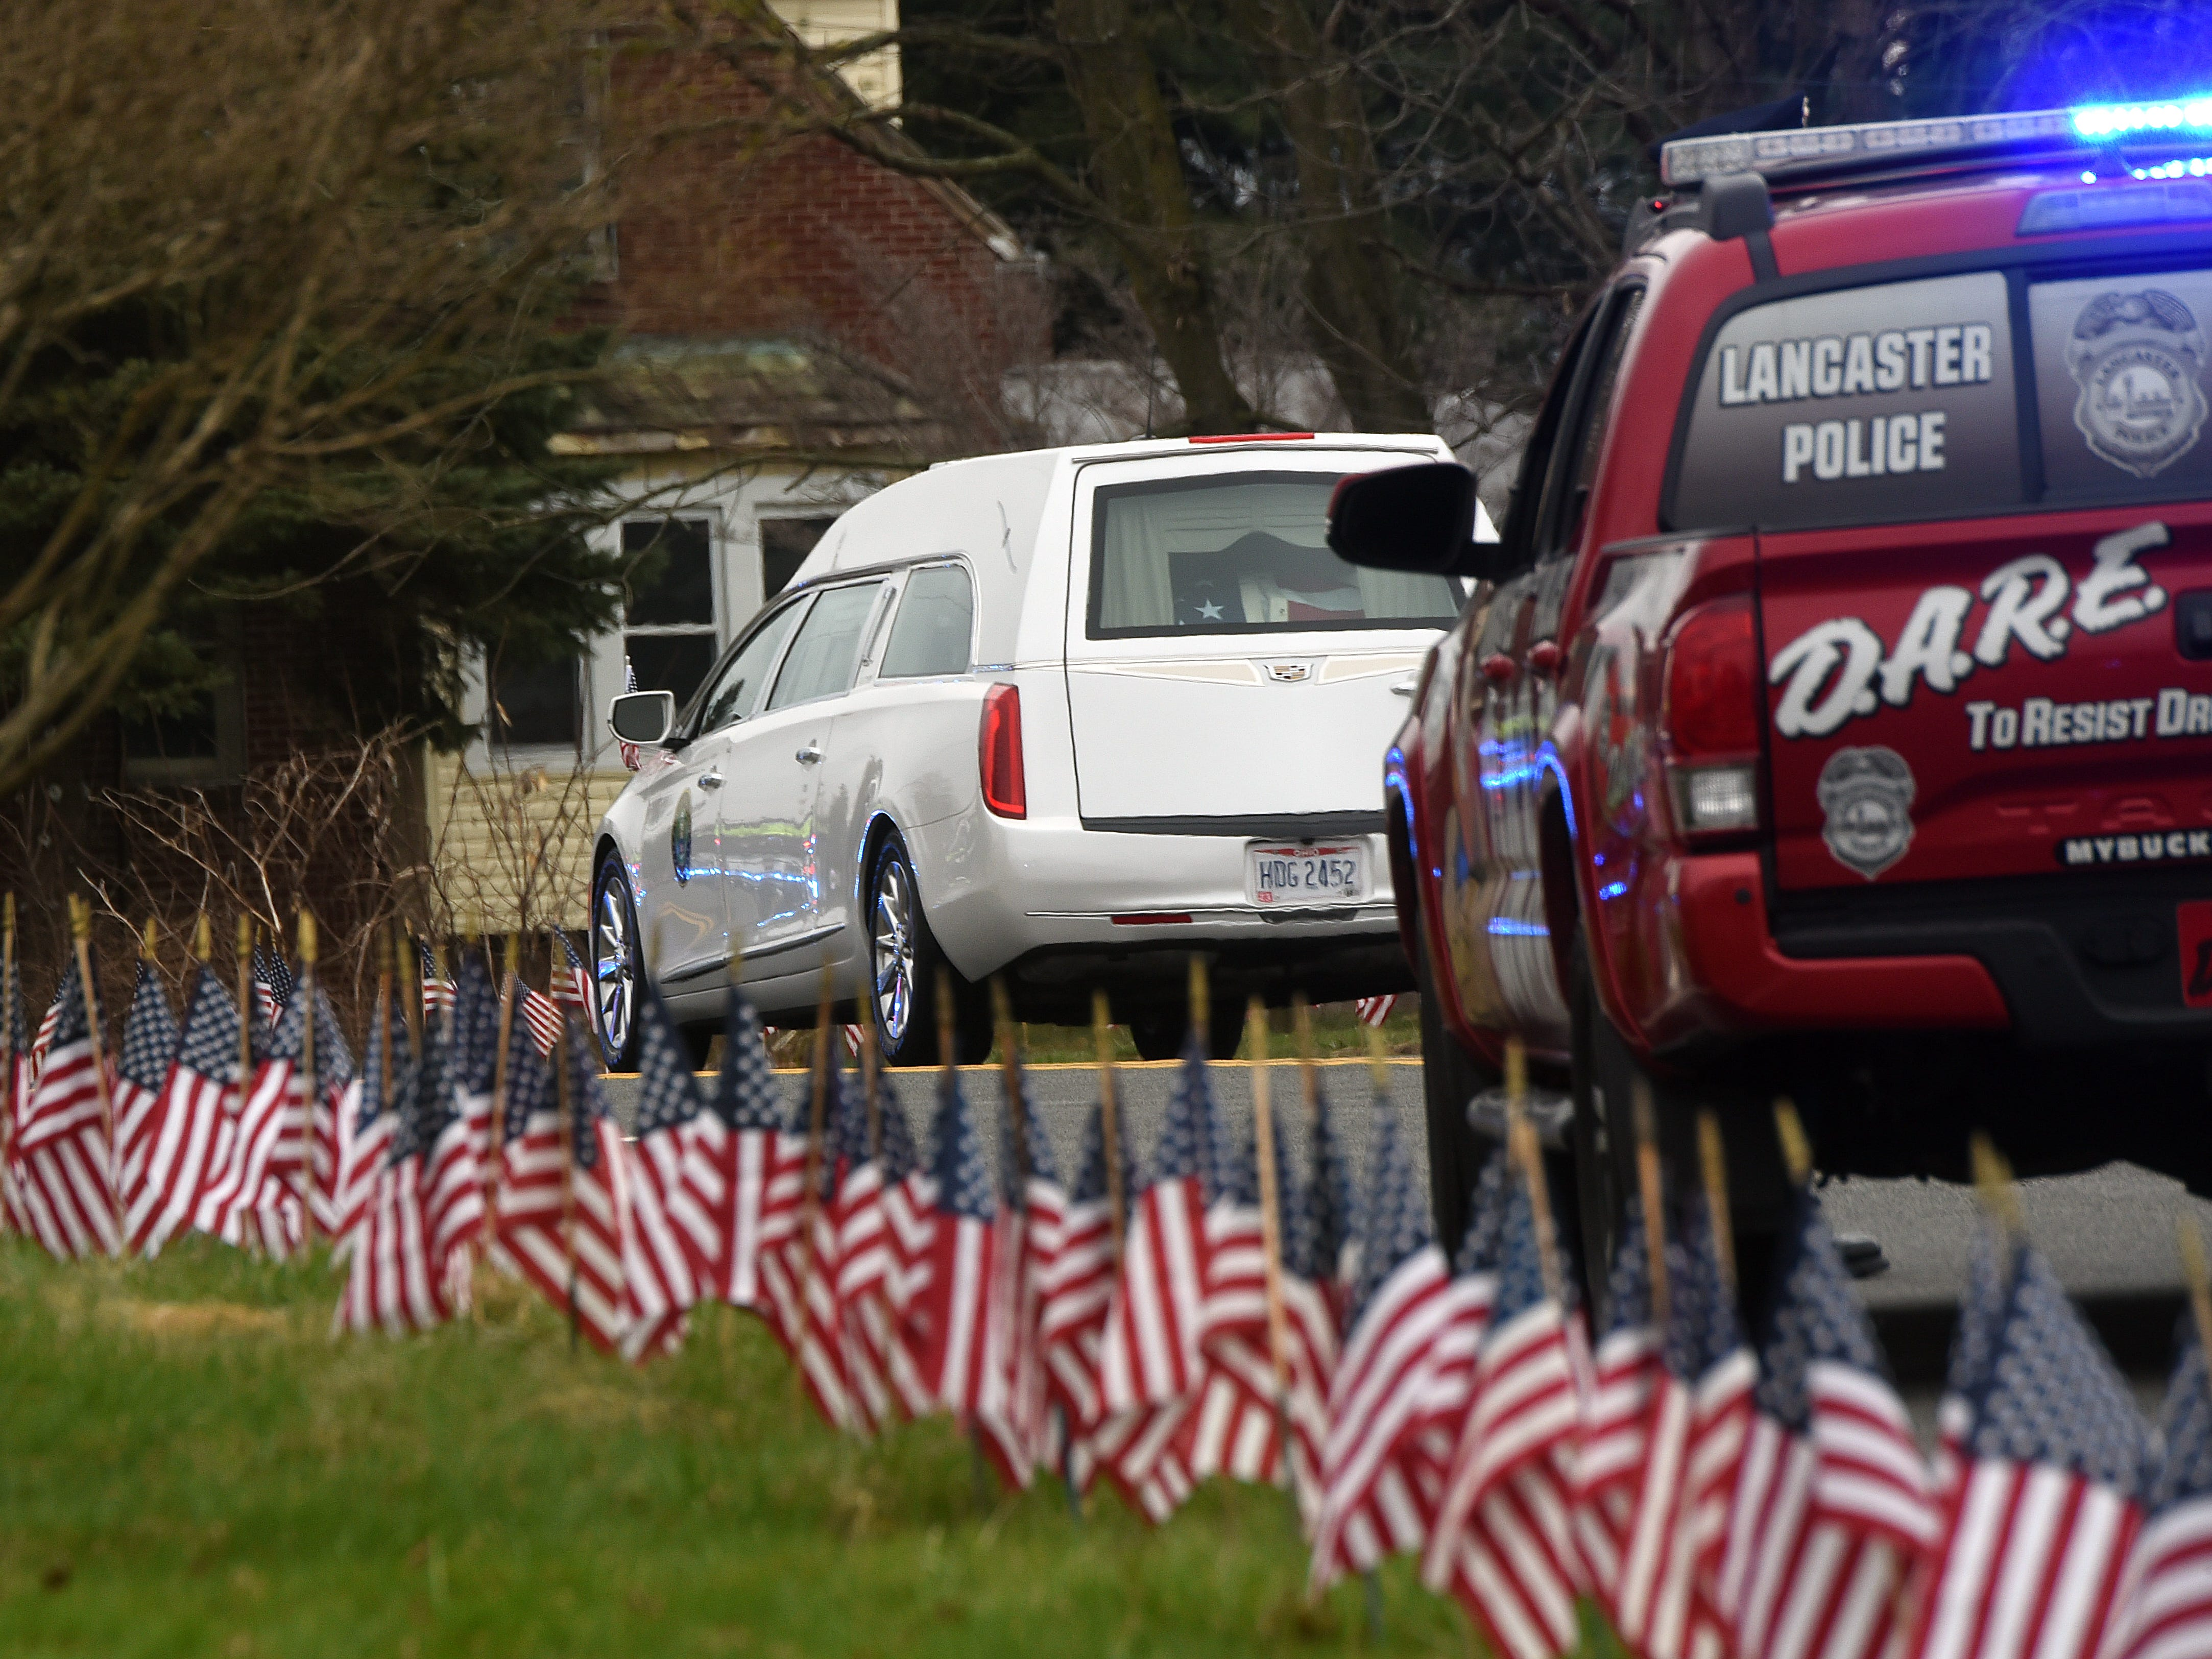 The hearse carrying Sgt. Joseph Collette's casket drives down West Fair Avenue after funeral services on Friday, April 5, 2019 at Faith Memorial Church in Lancaster. Collette was killed in action in Afghanistan last month.